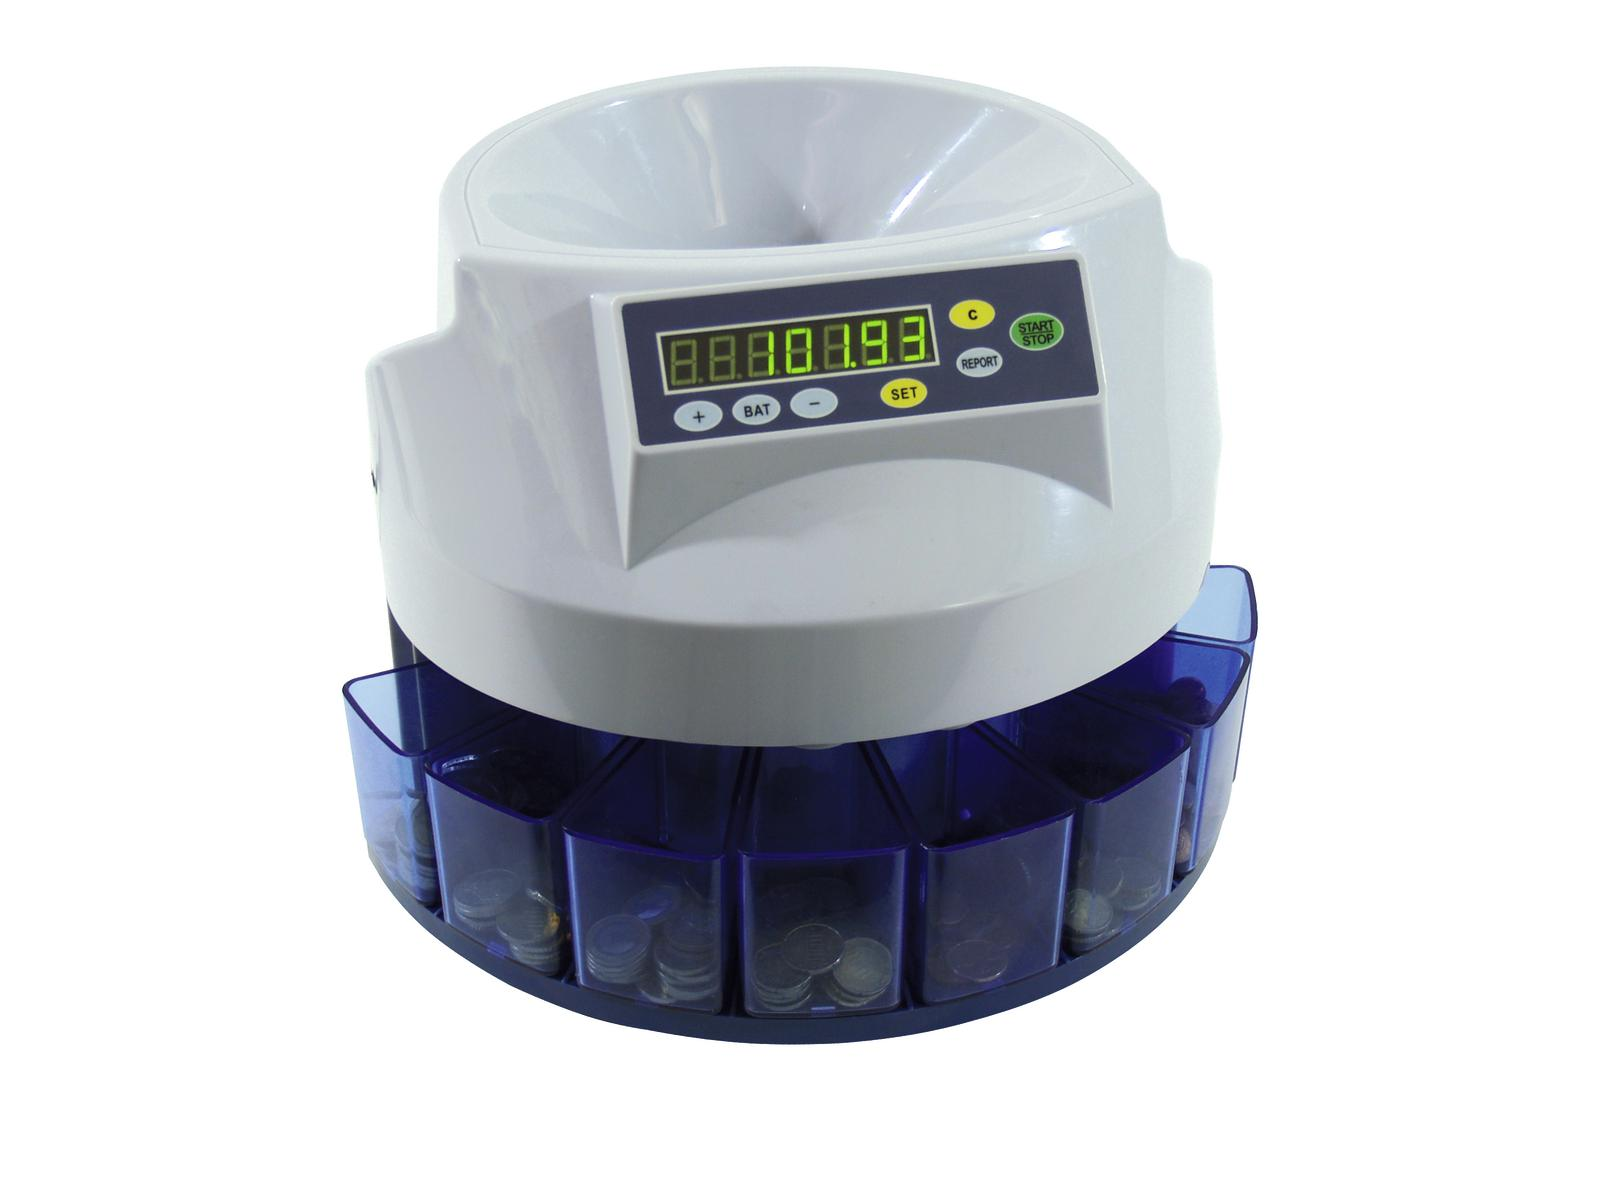 EUROLITE CS-100 Coin counter/sorter